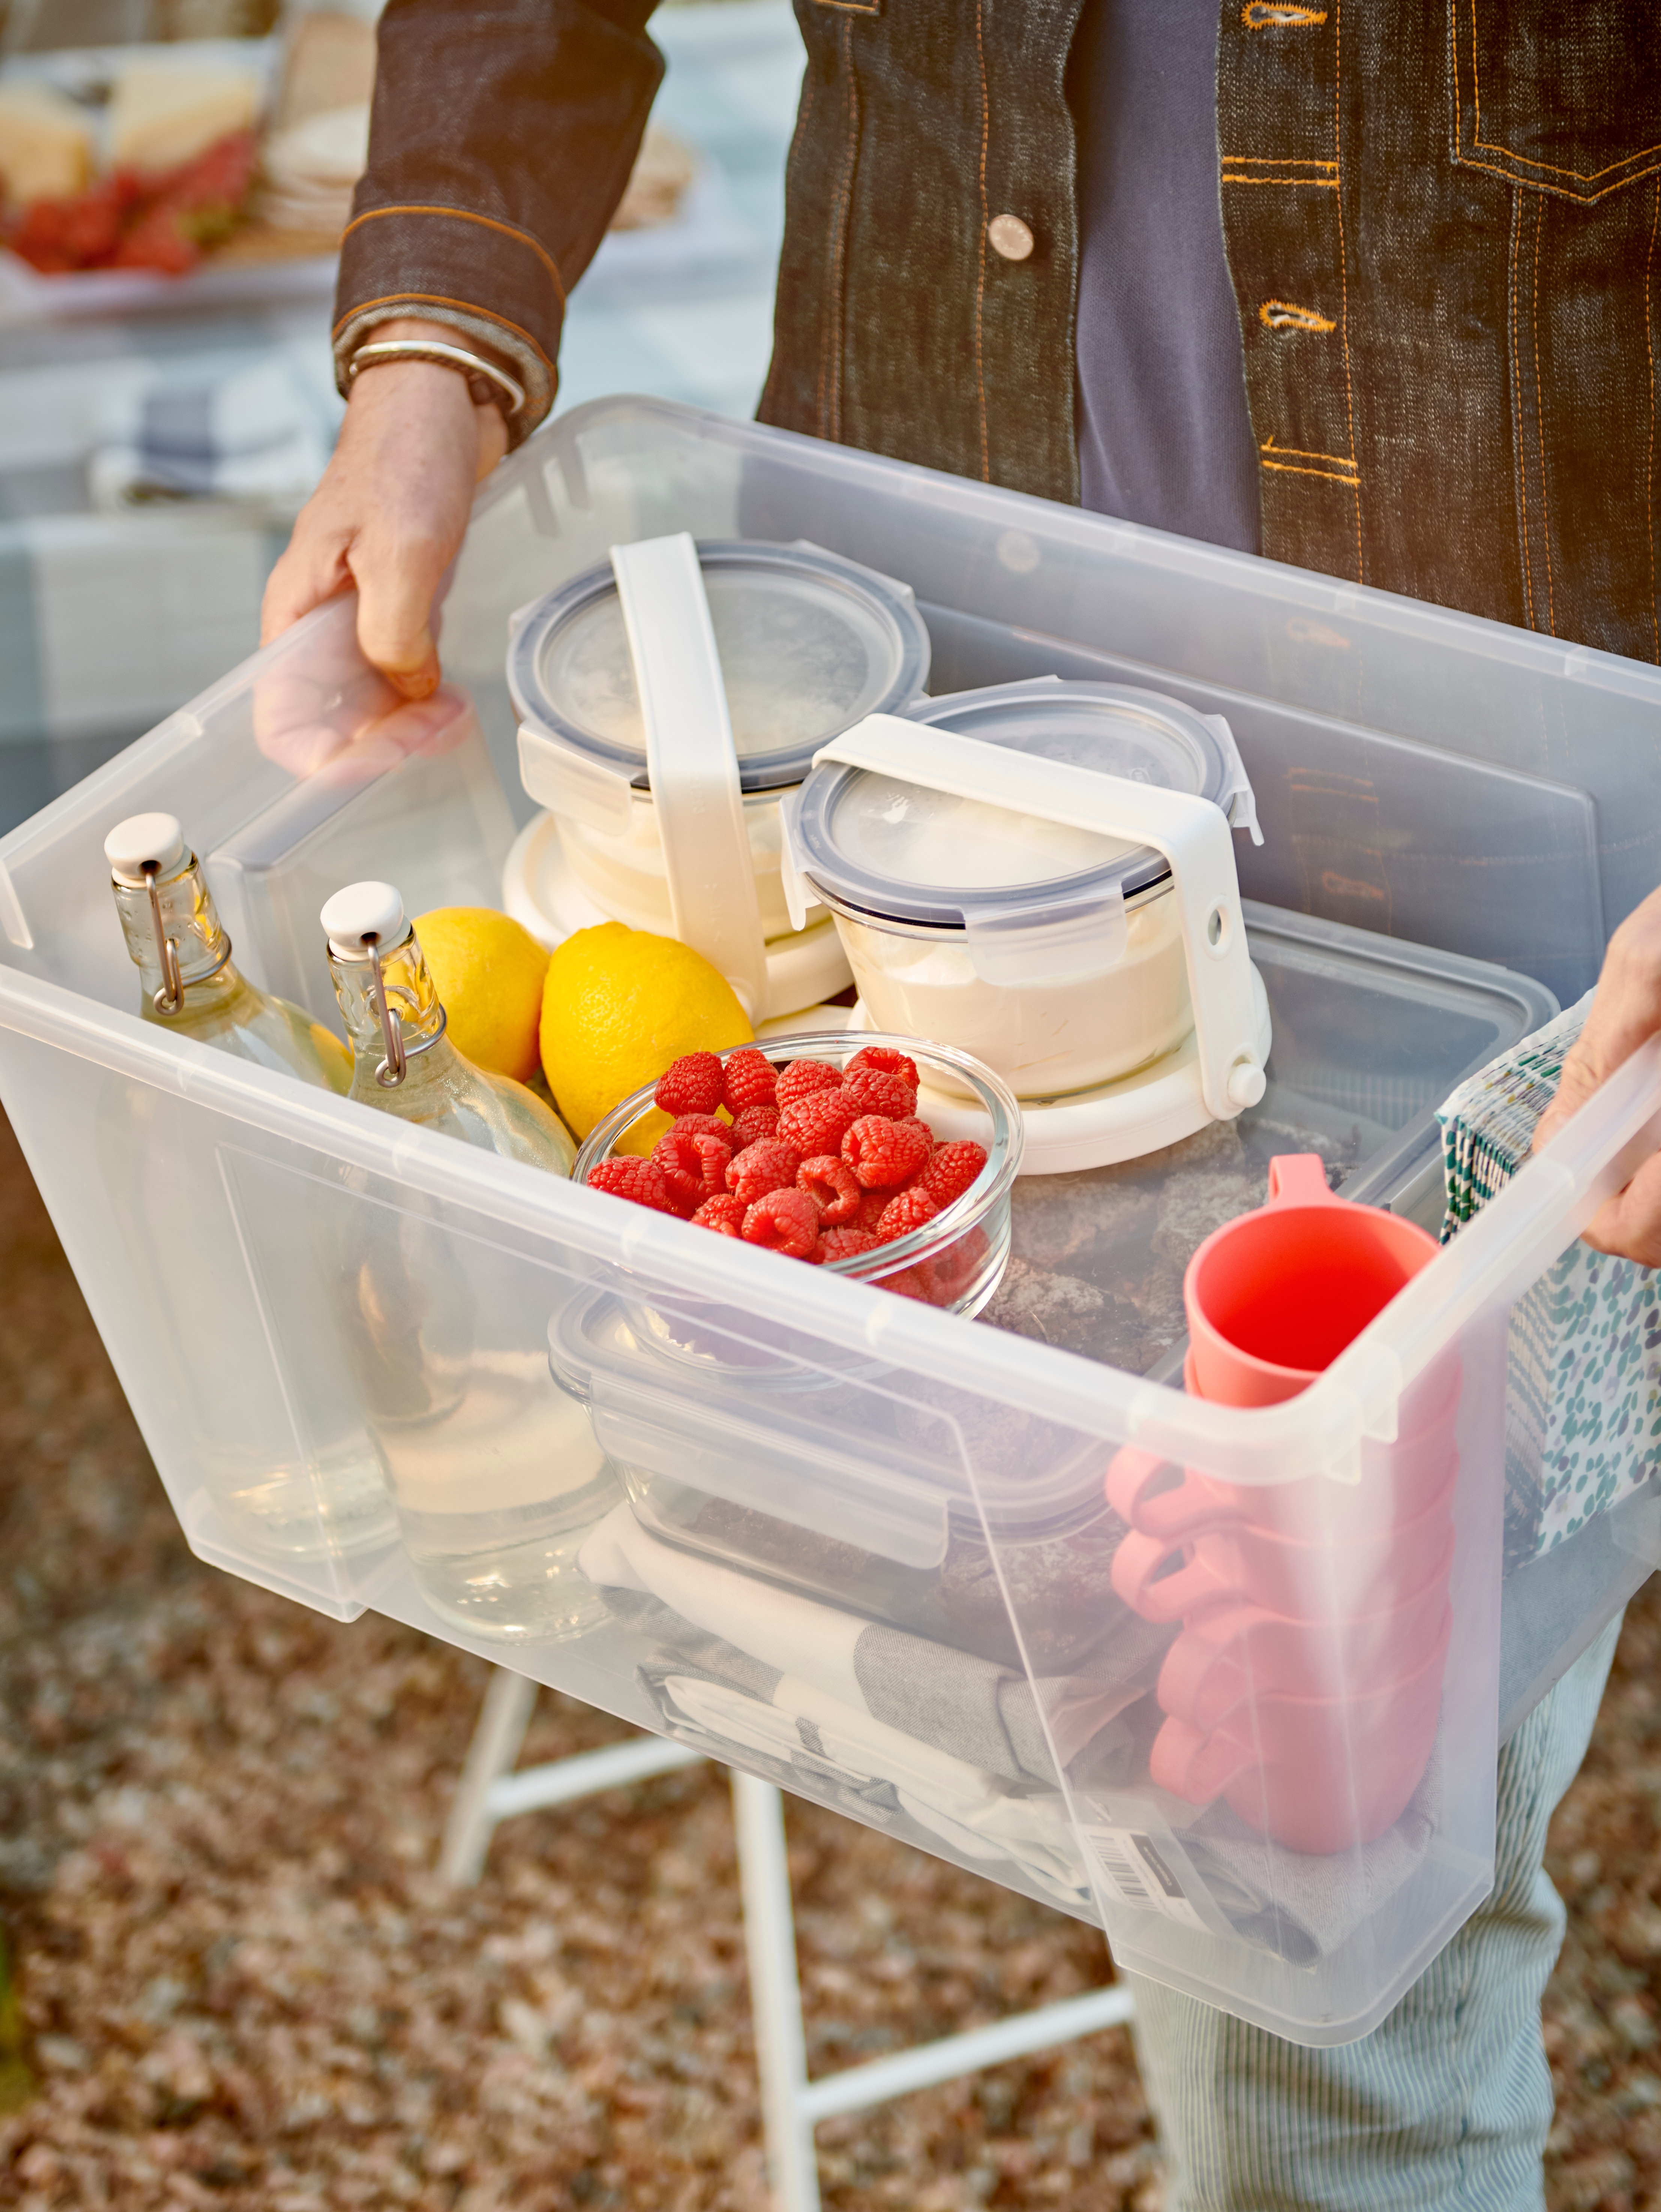 Hands hold a transparent SAMLA box filled with tableware, glass bottles and food containers strapped to ice packs.